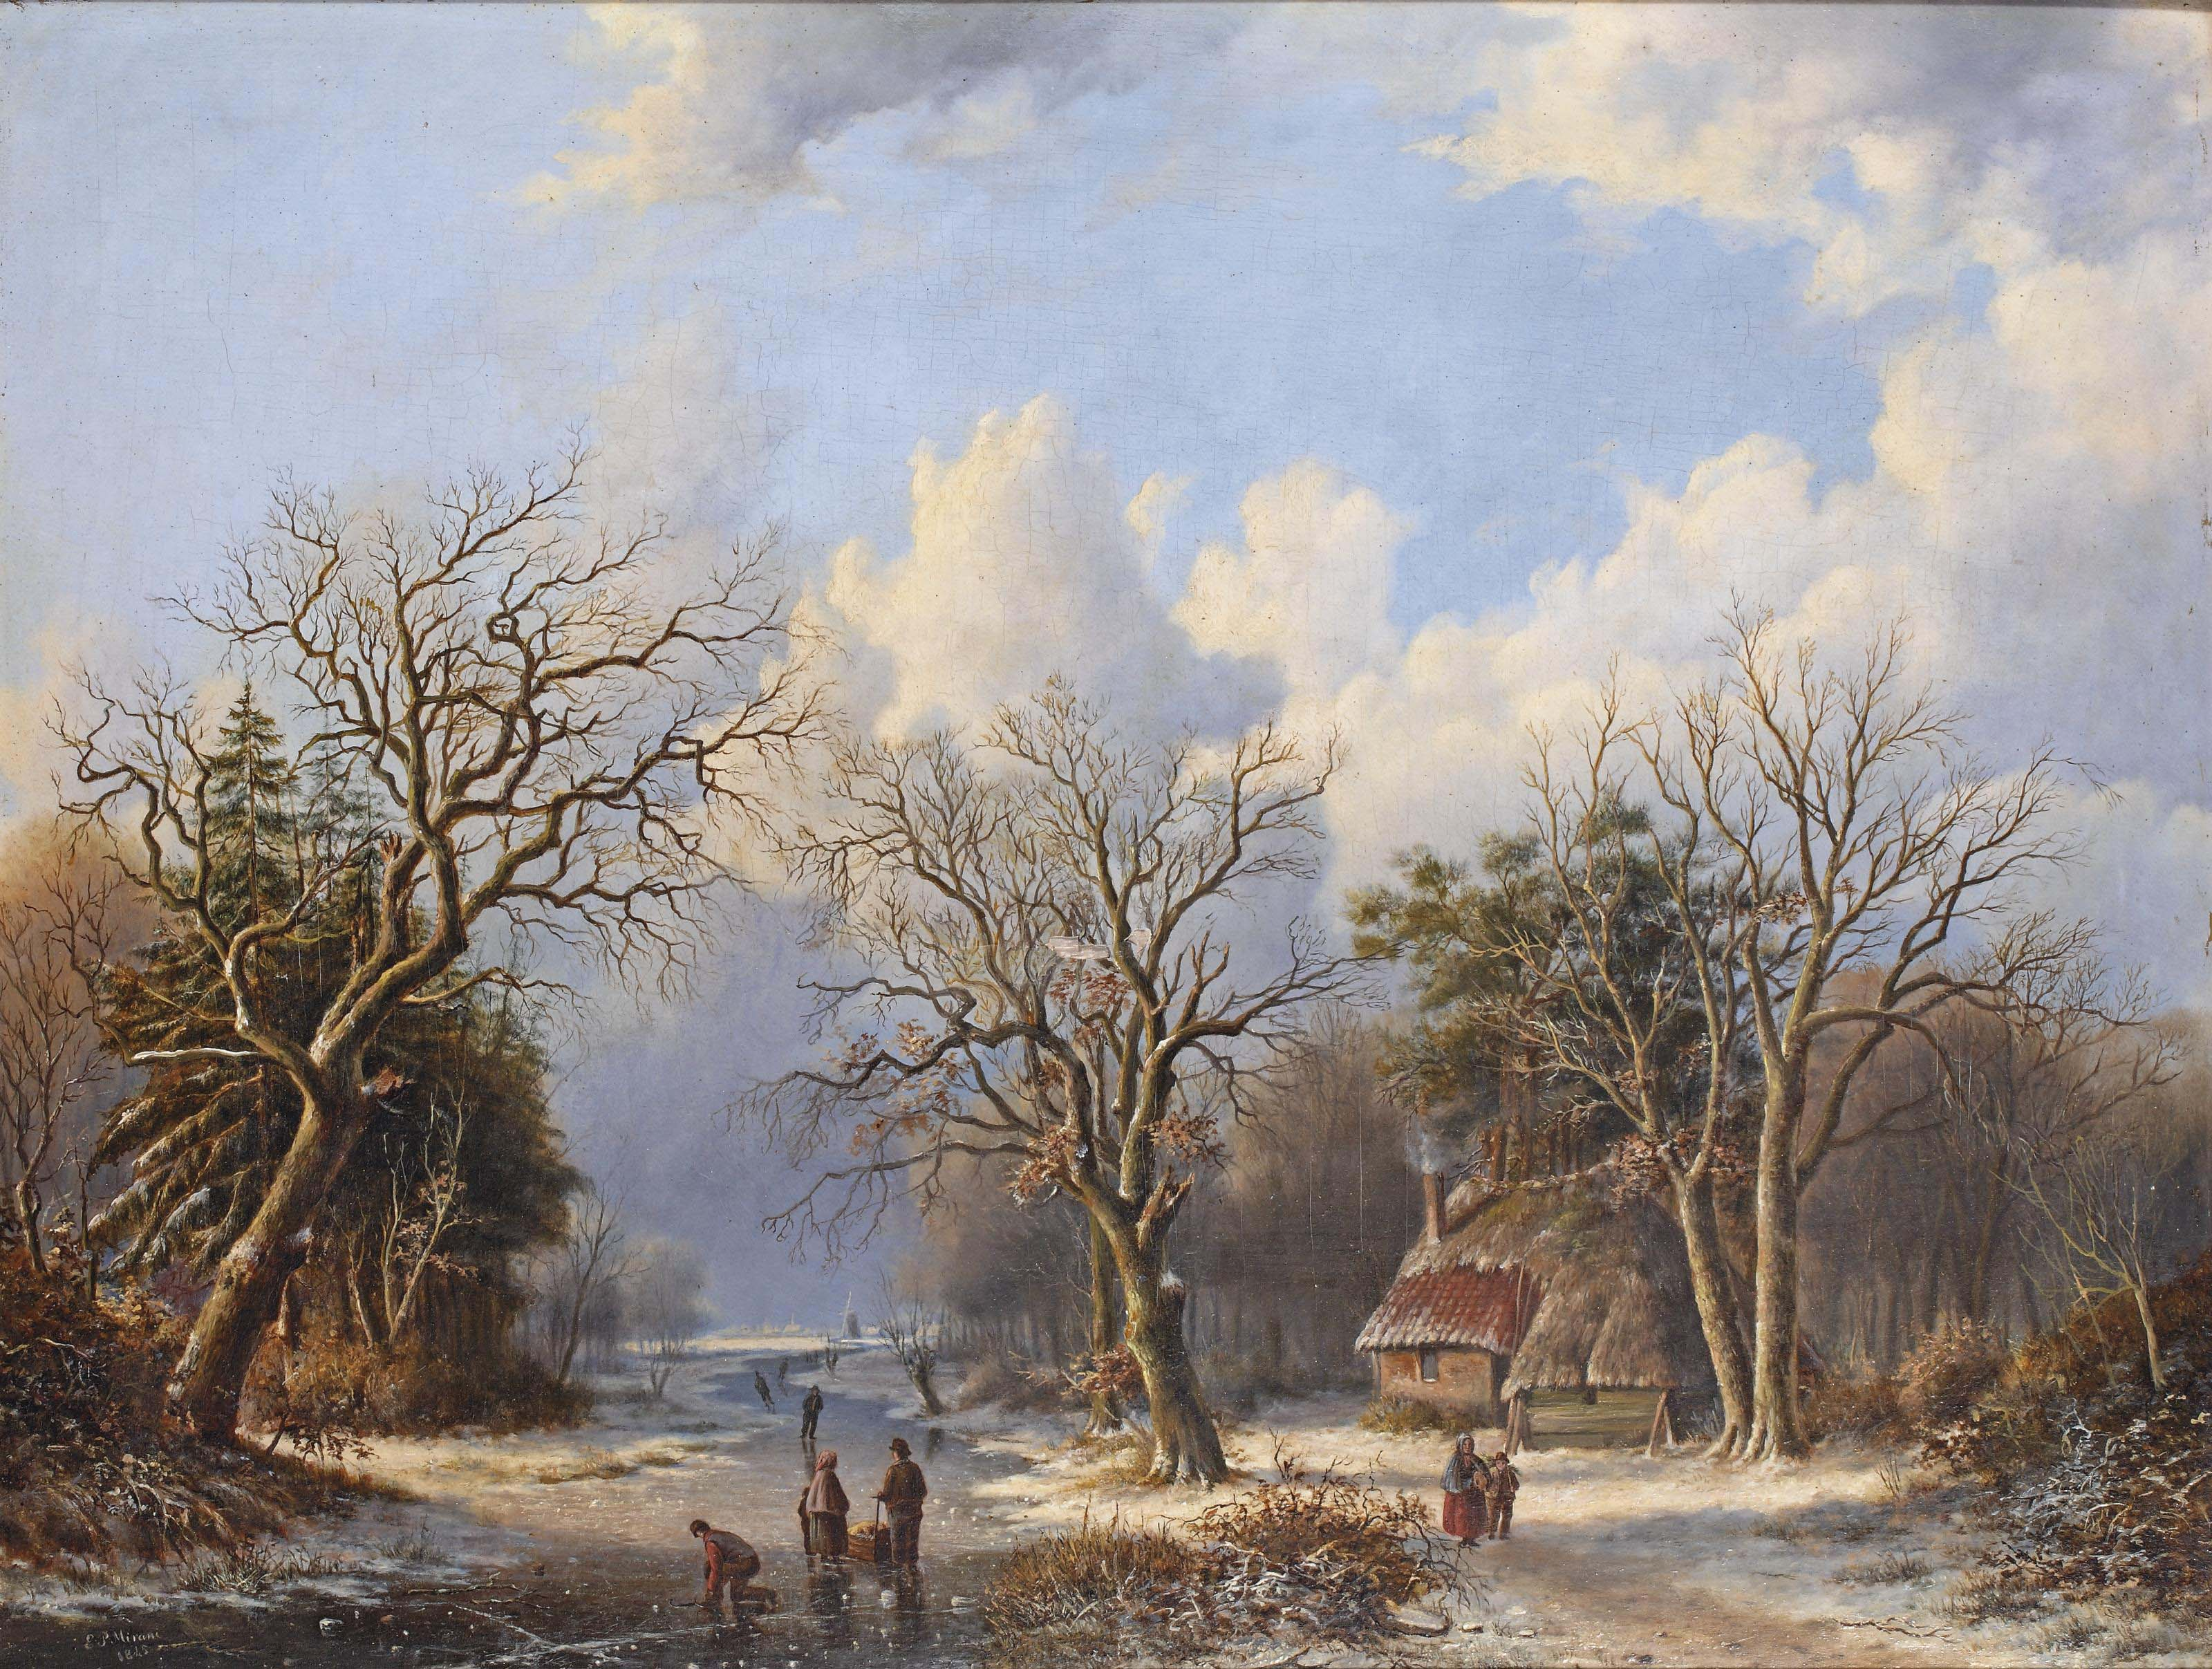 A wooded landcape with skaters on the ice, a farm on the river bank